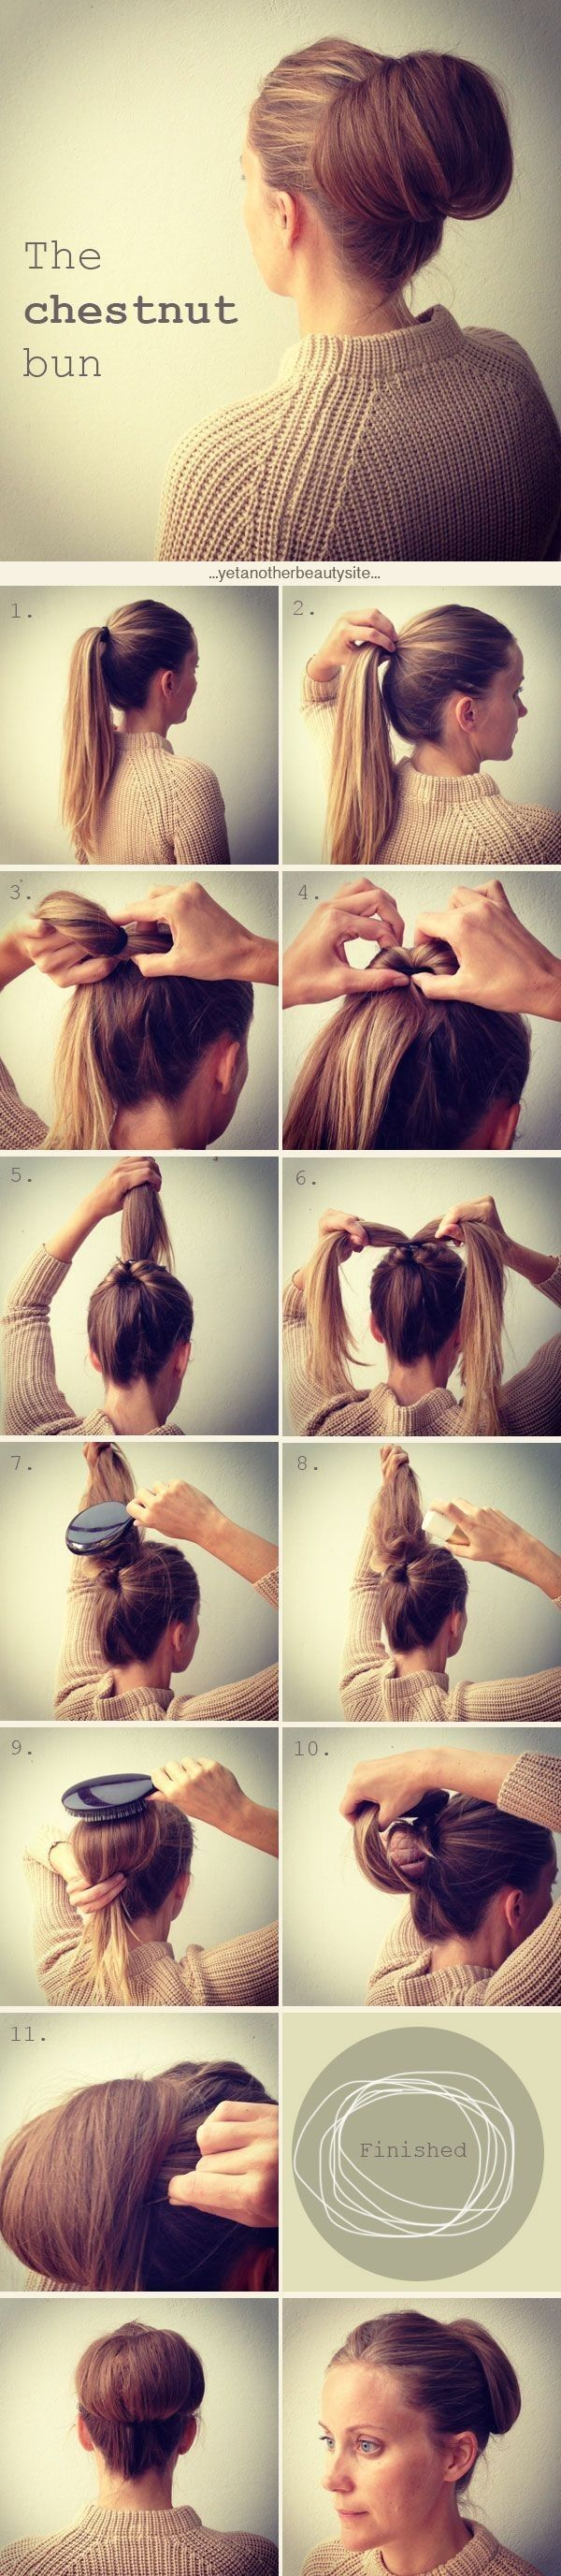 18 Simple Office Hairstyles for Women